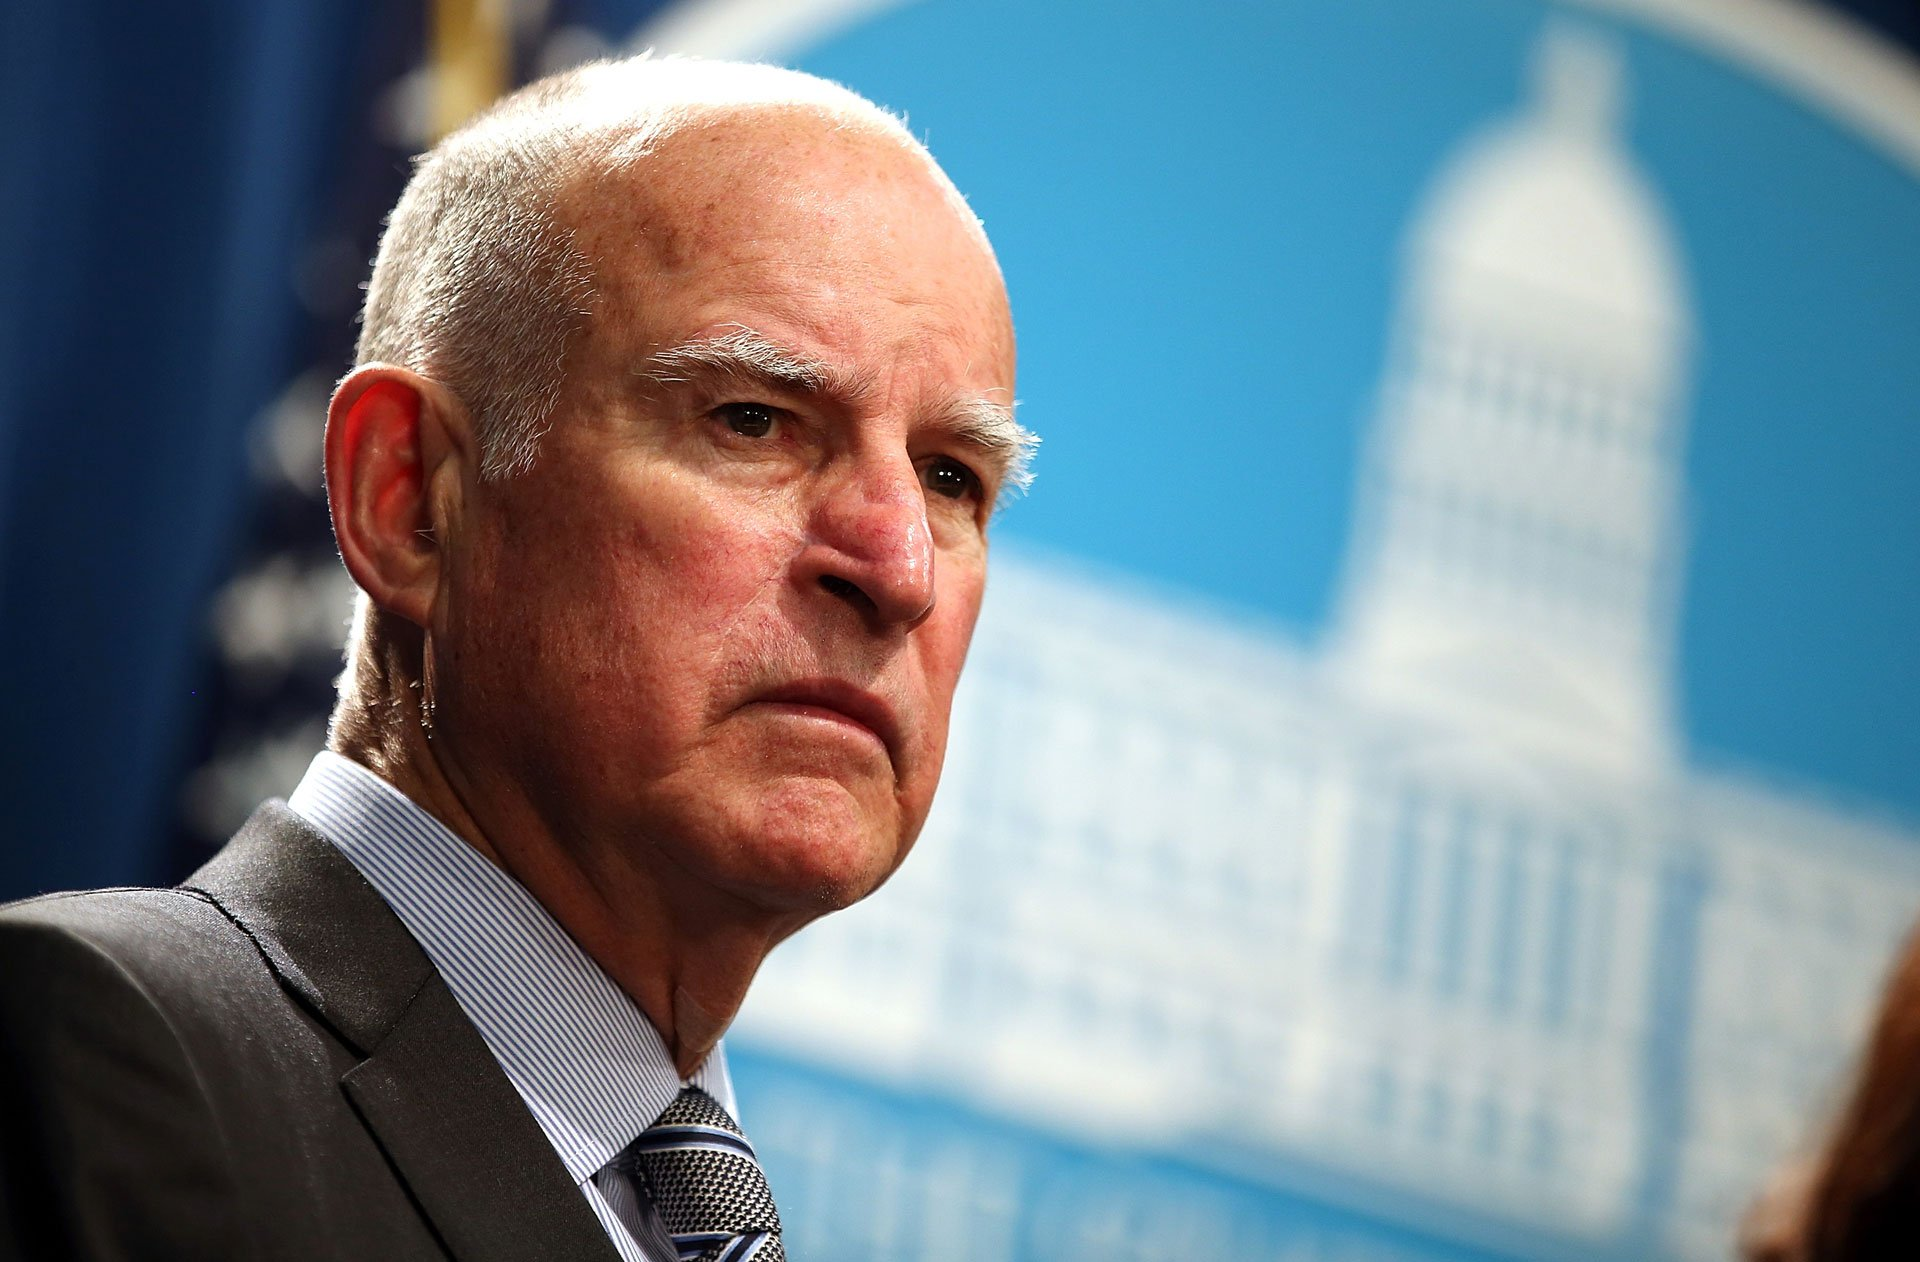 California Pols Reprehensible Says Father of Illegal Immigrants Victim